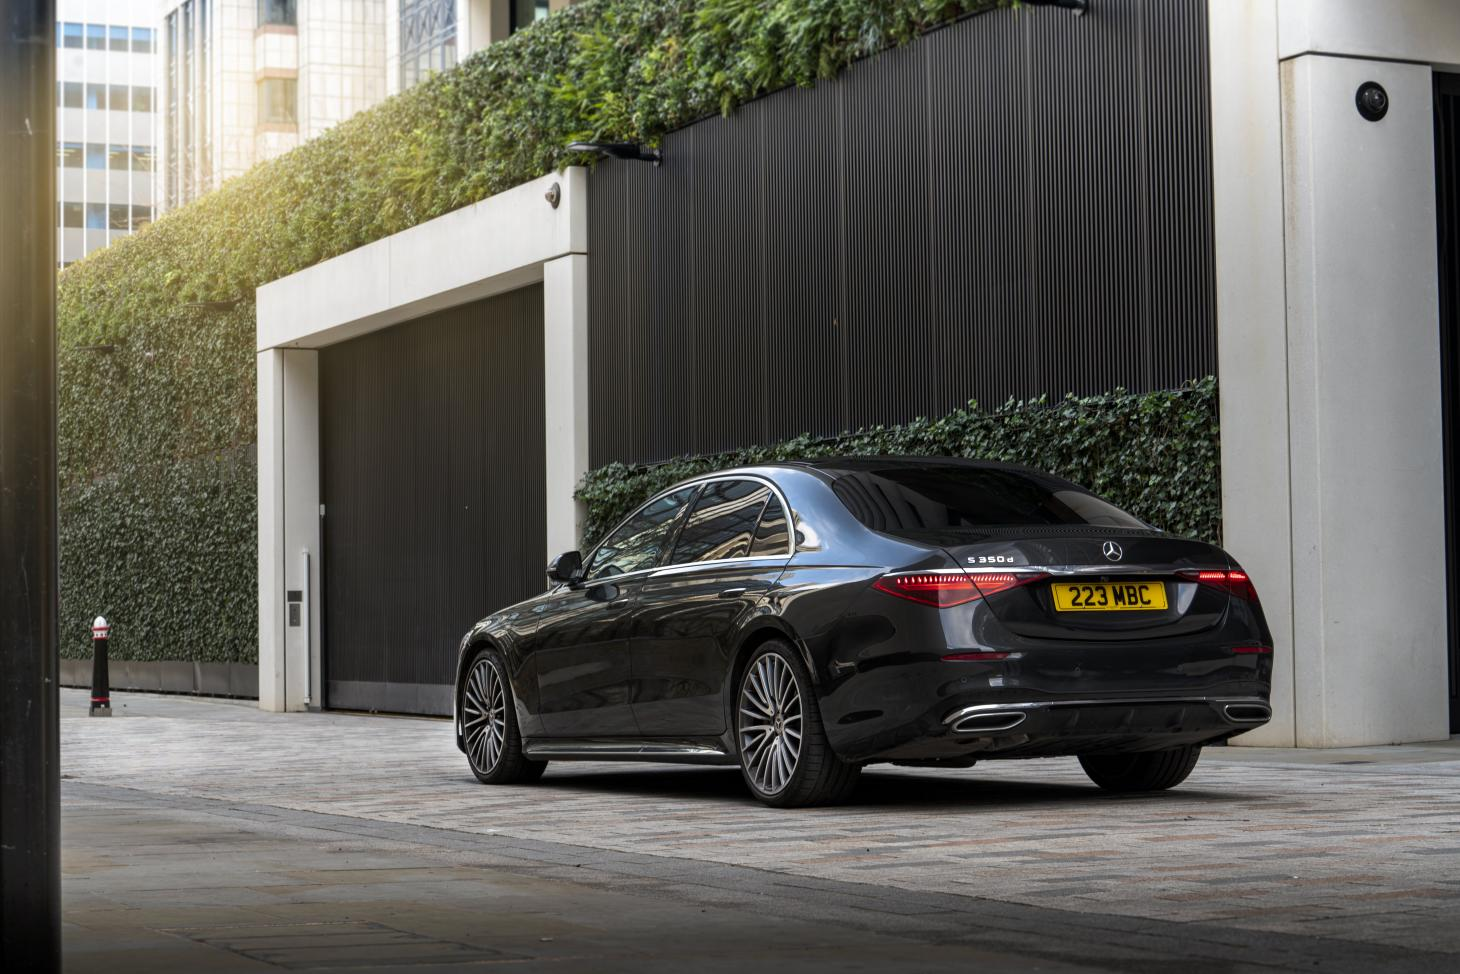 The new Mercedes S-Class